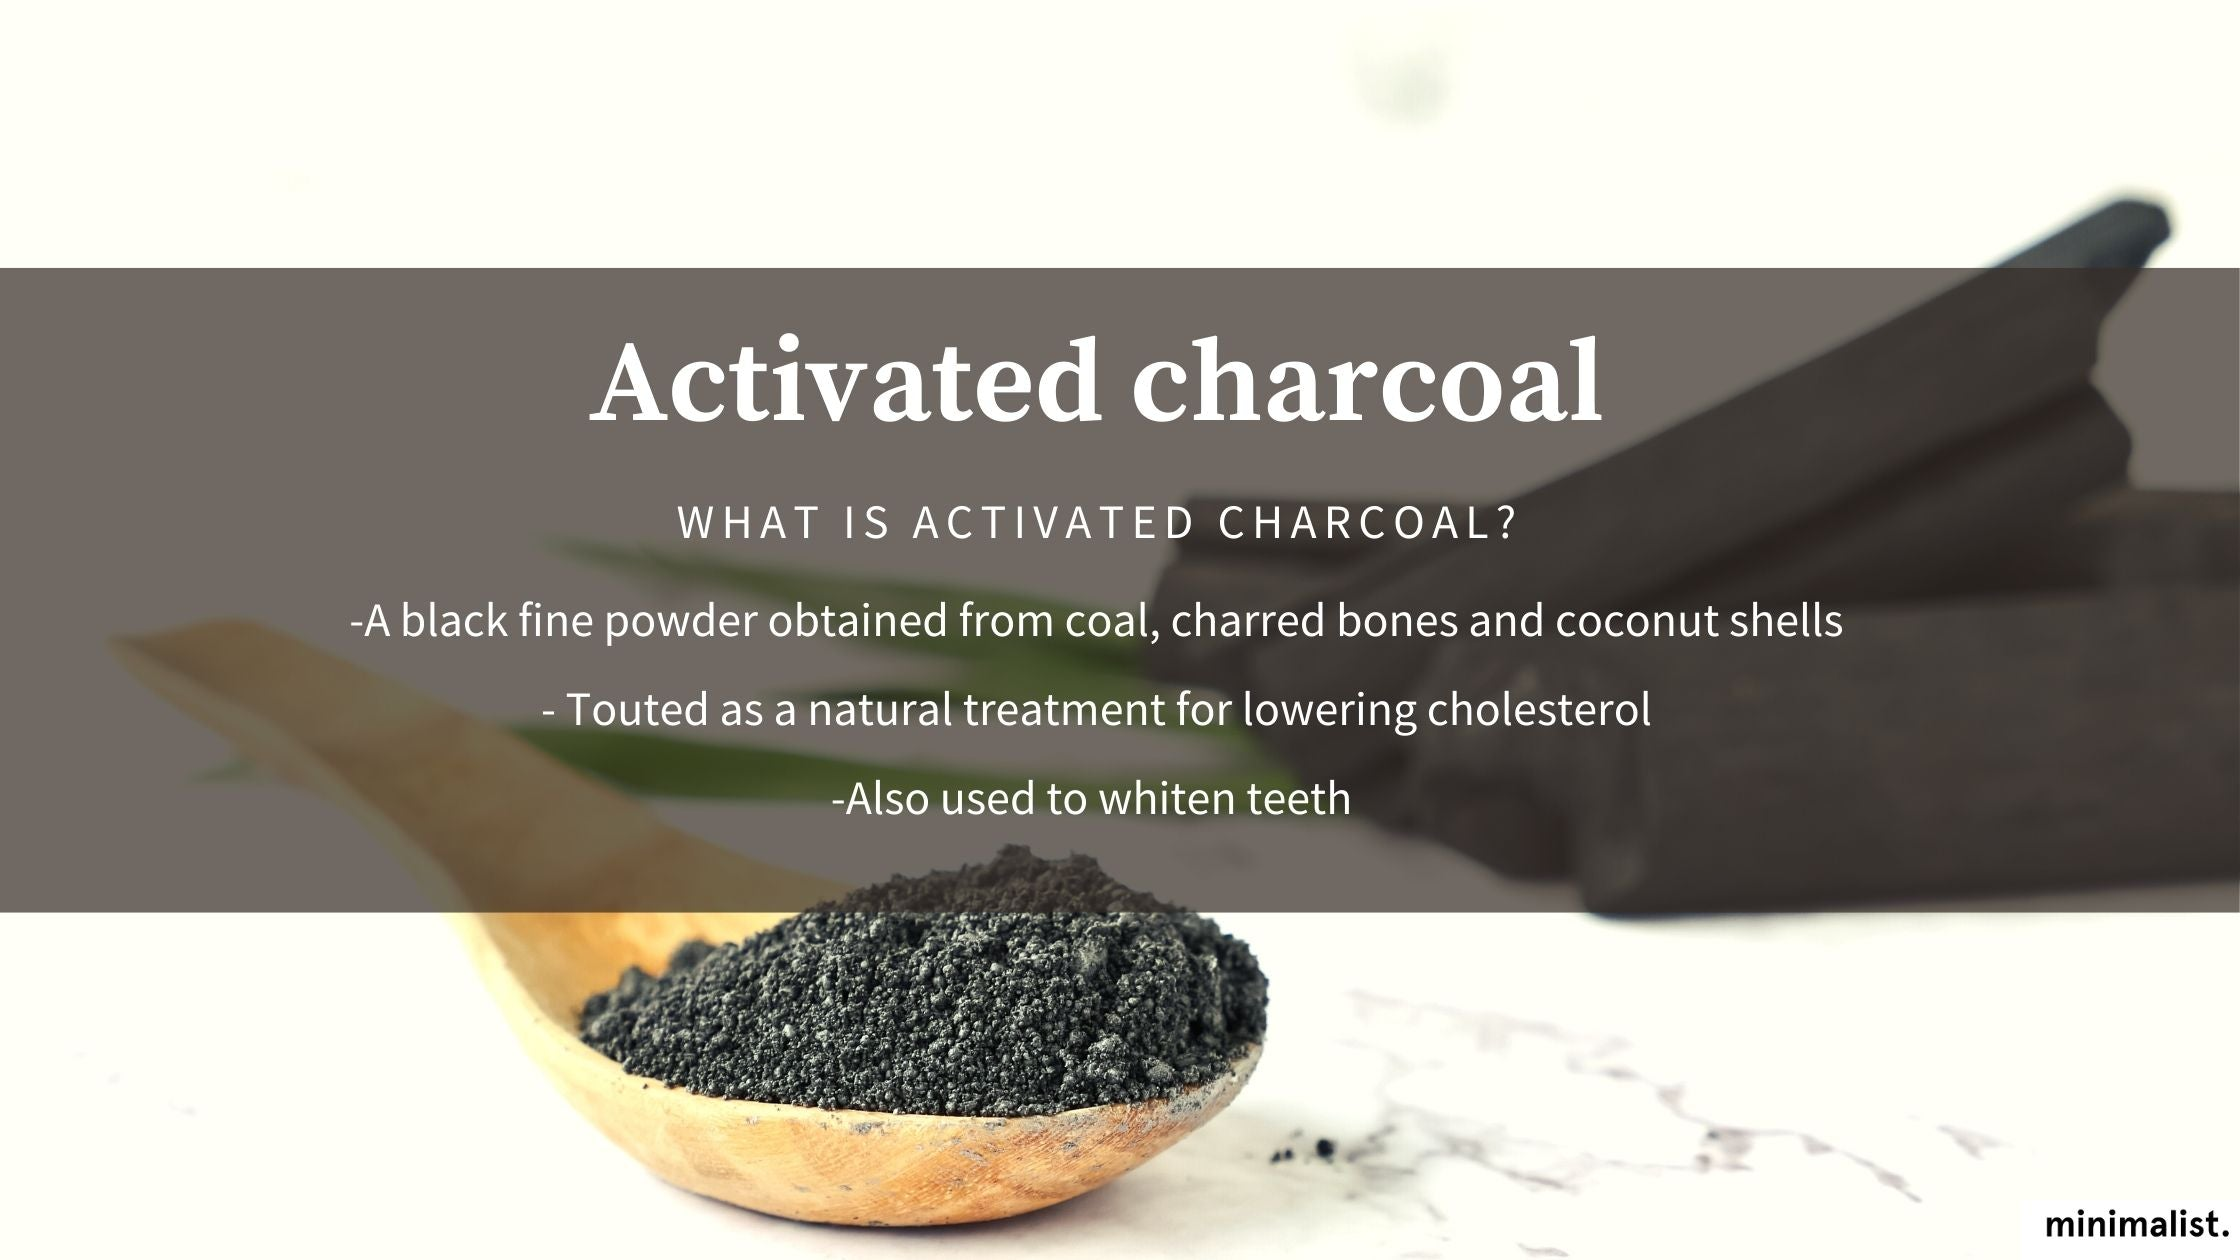 how is activated charcoal different